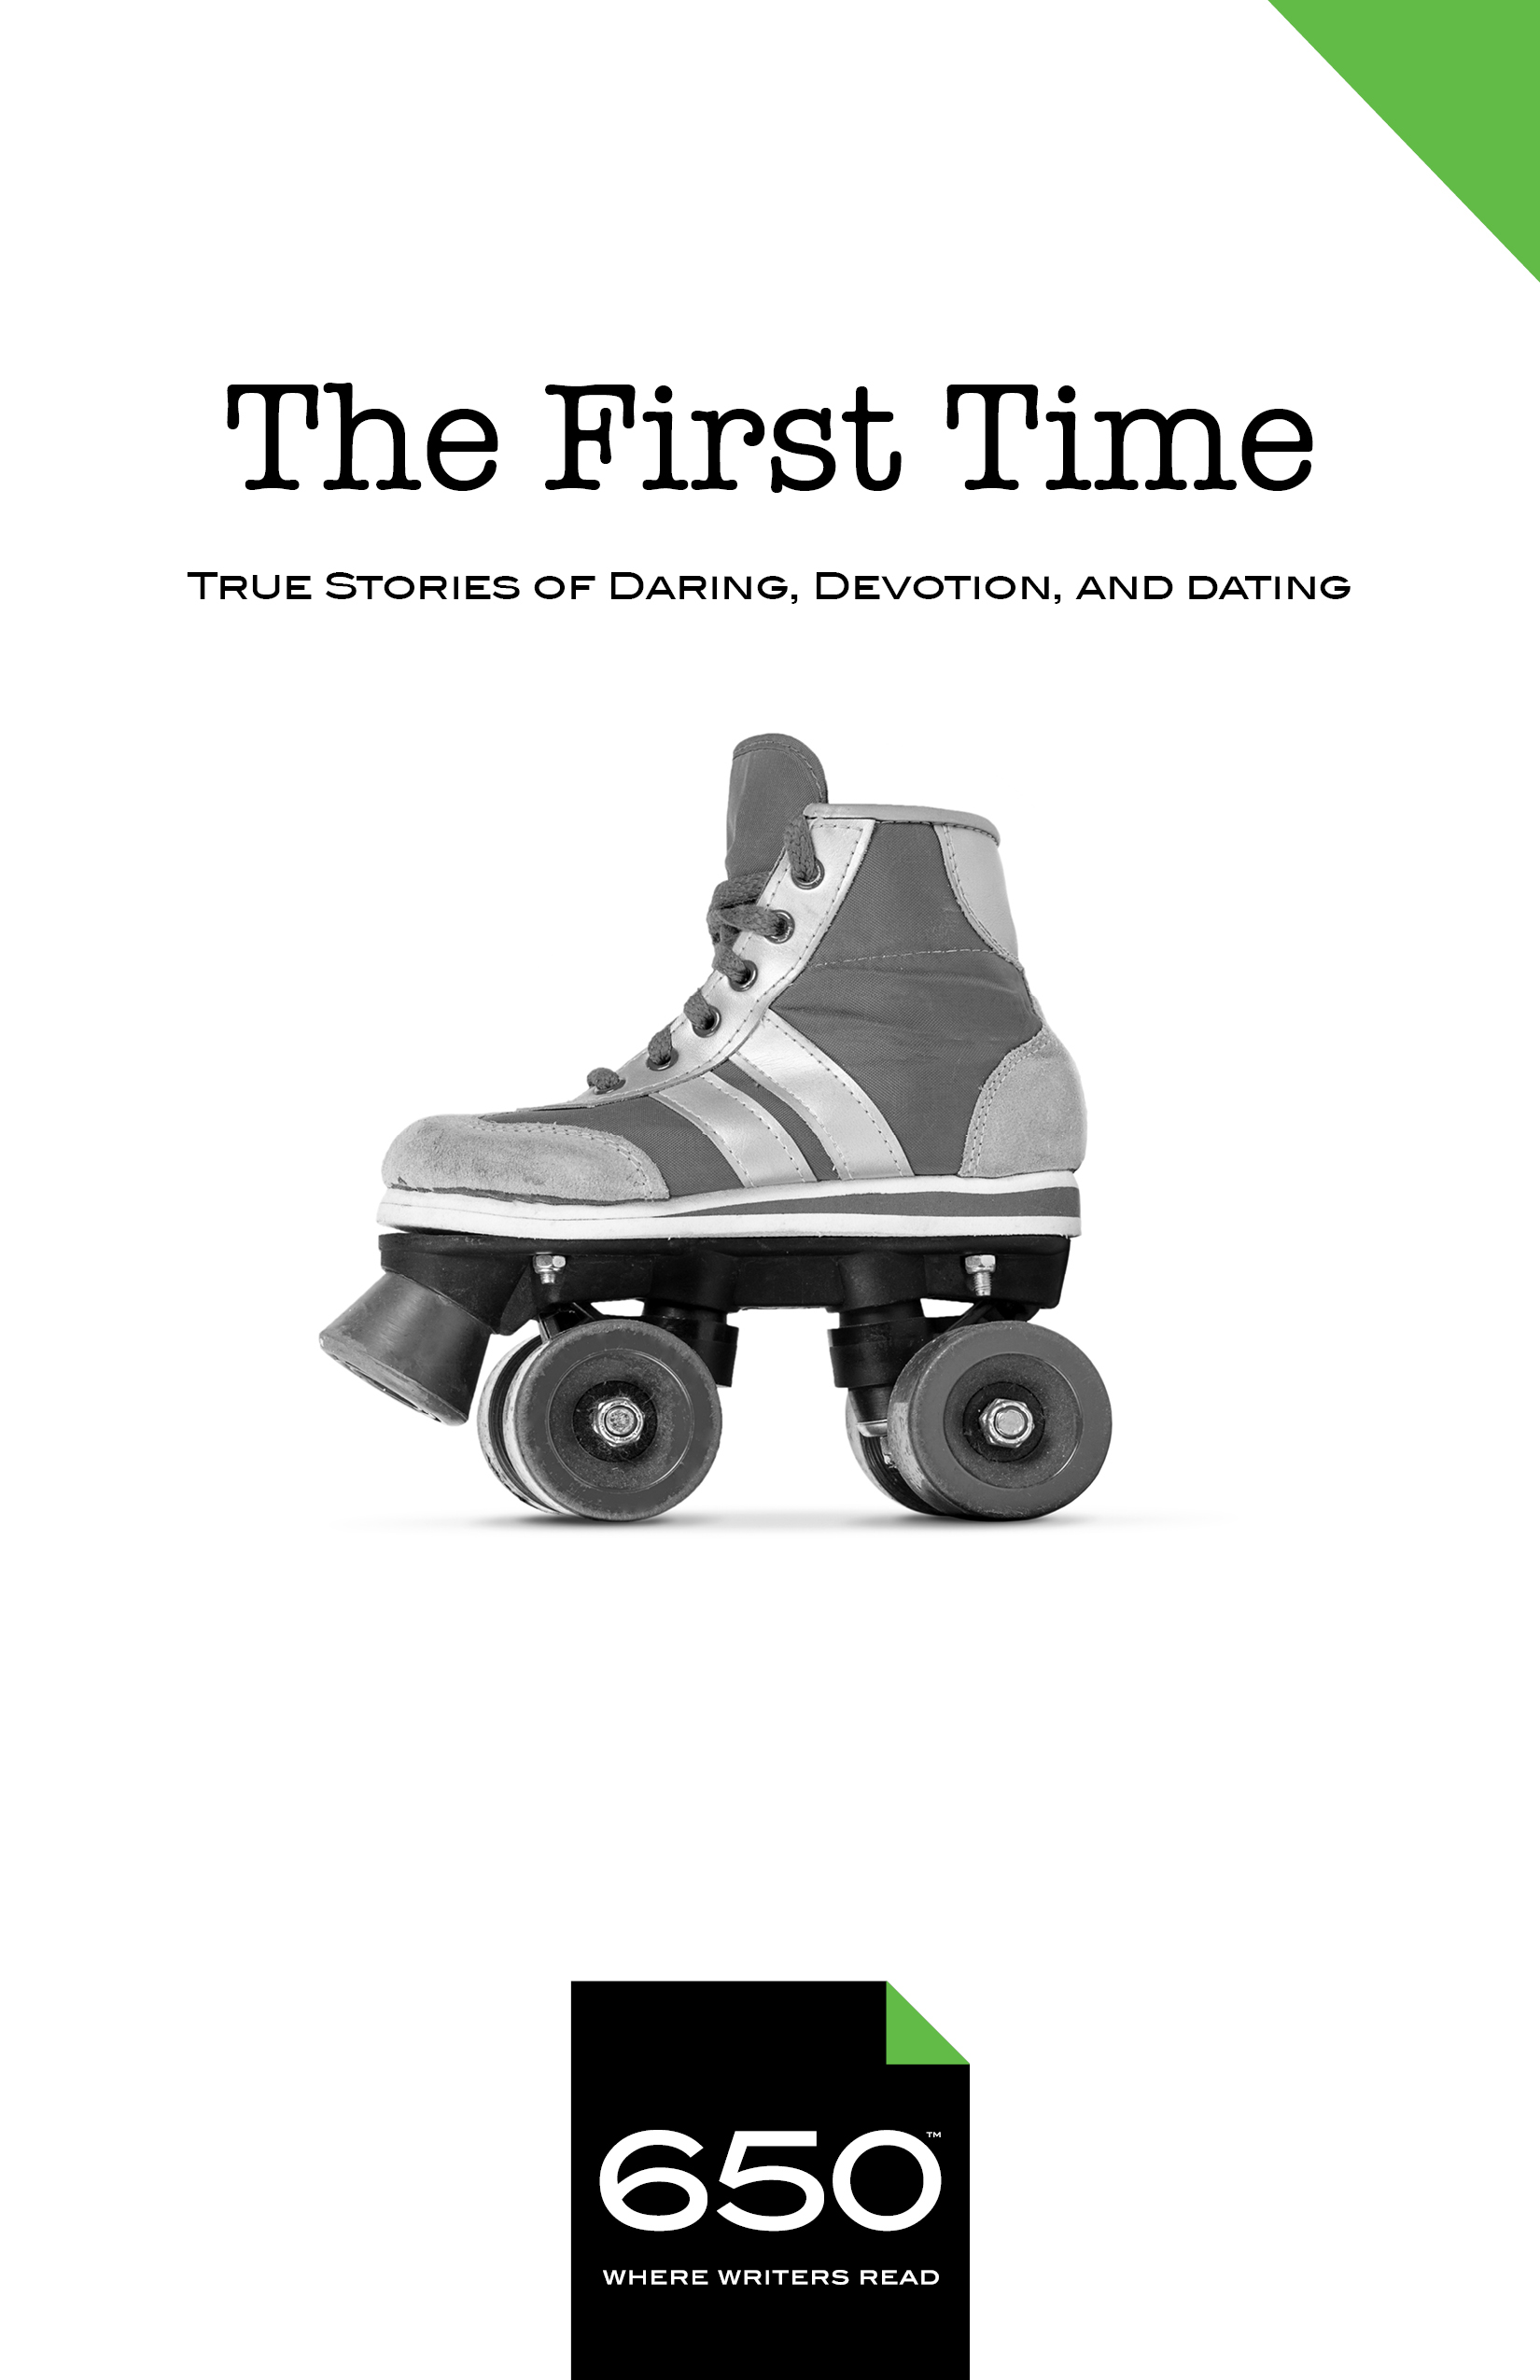 The First Time- Book Cover Final.jpg